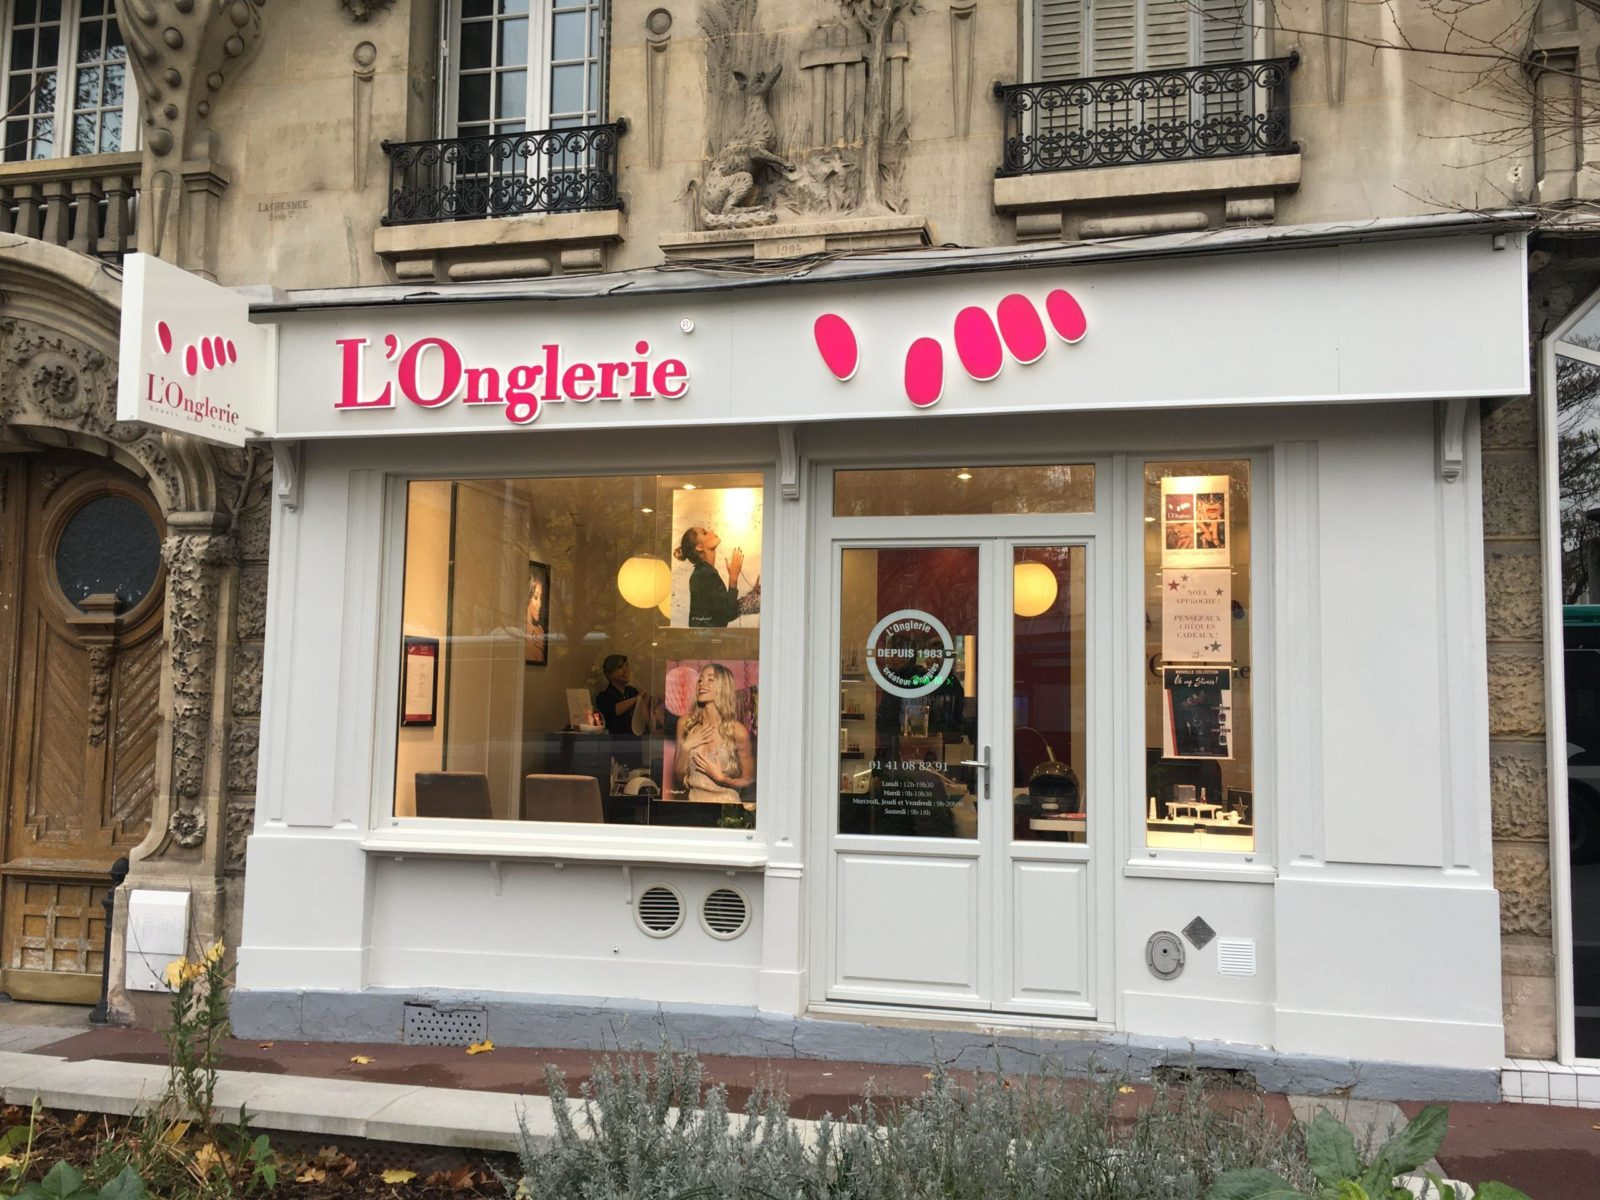 Institut L'Onglerie – Issy Les Moulineaux